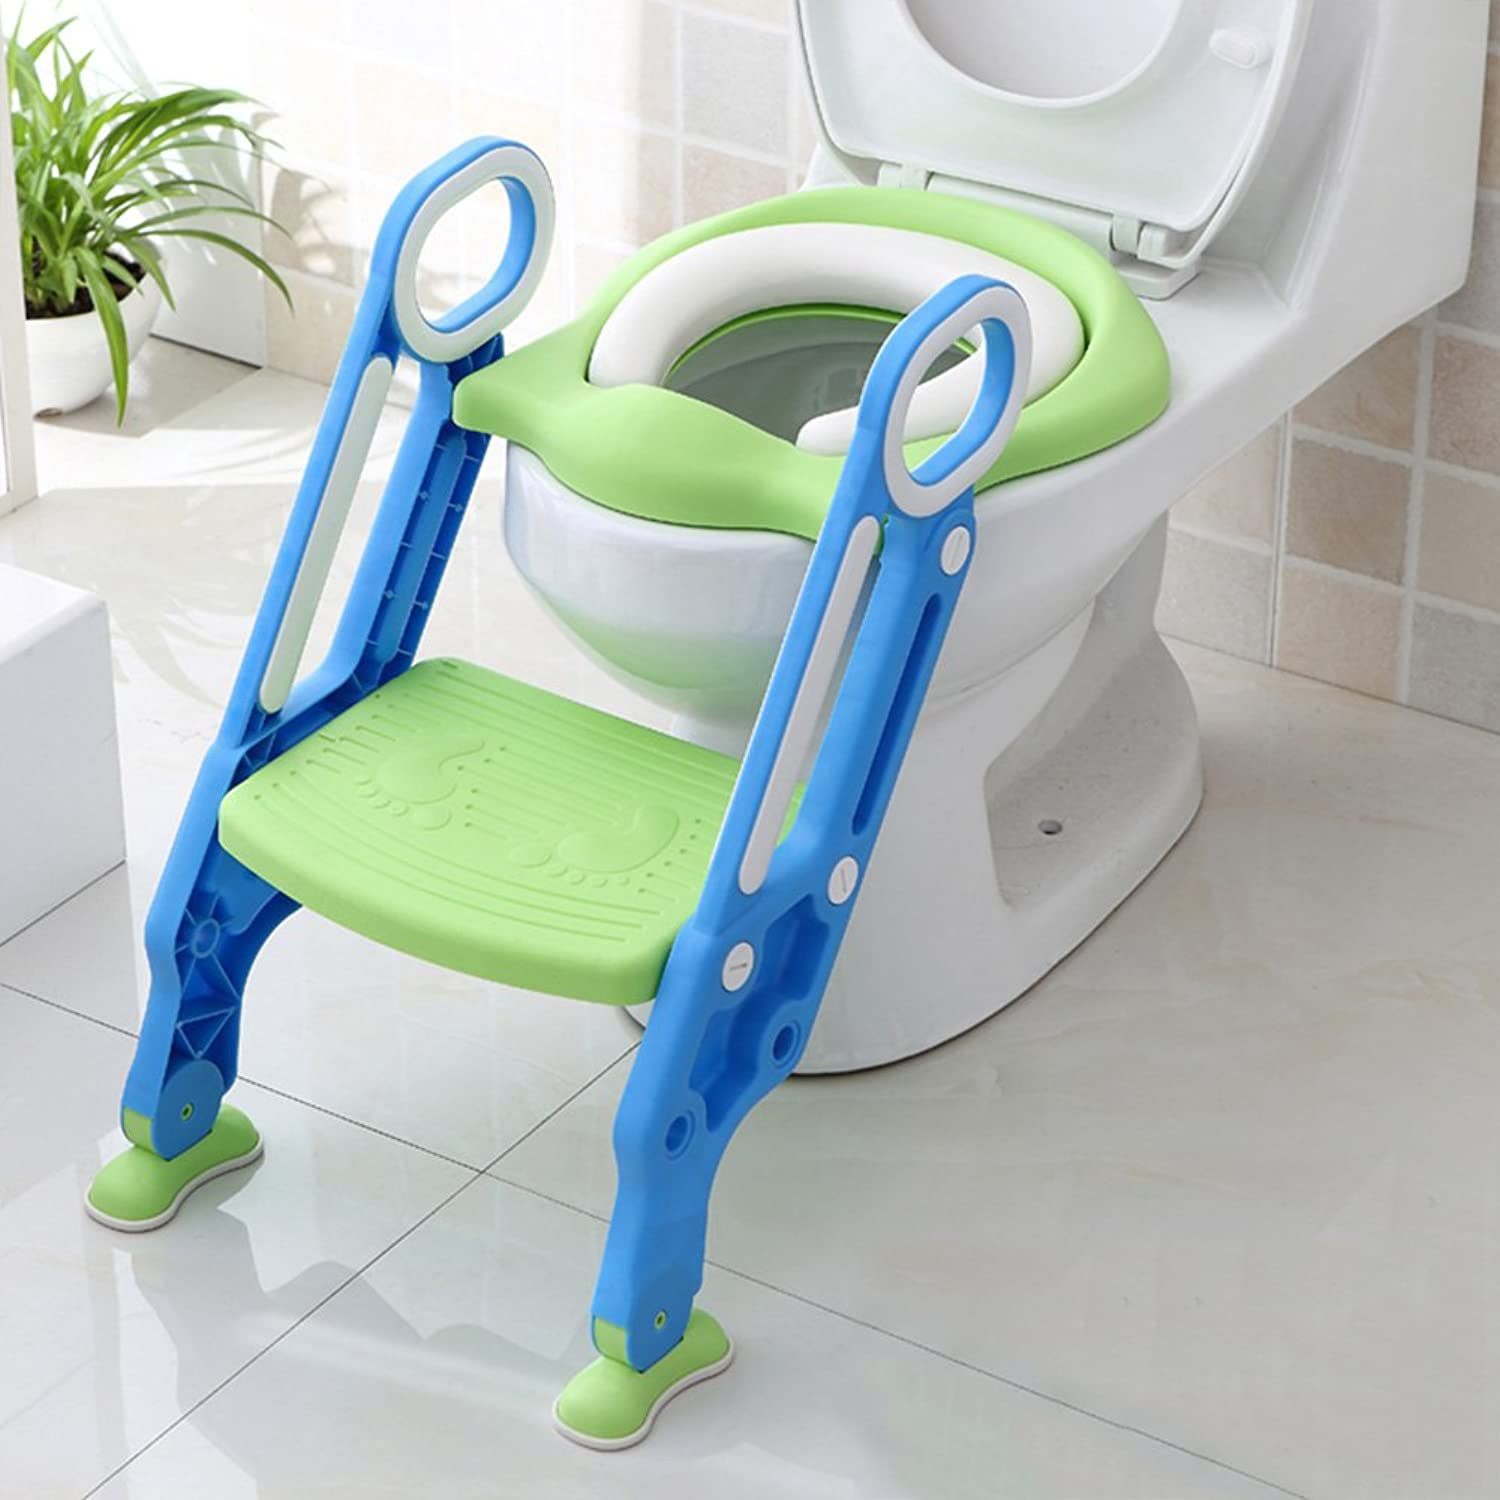 Olpchee PP Foldable Adjustable Potty Toilet Training Seat Baby Toddler Kid Non-Slip Step Stool Potty Ladder Chair (bluee Green, Hard)